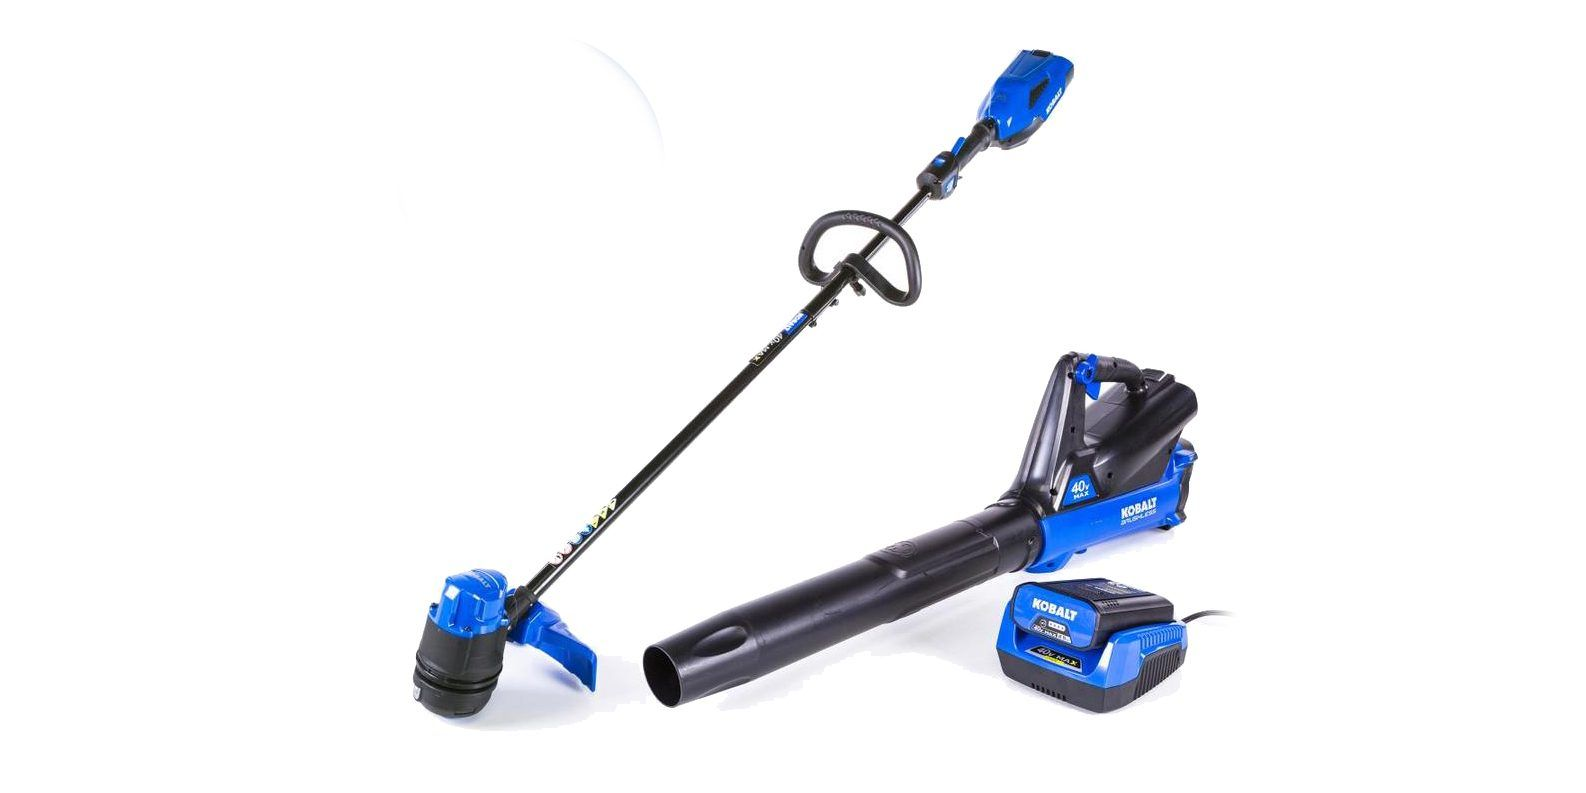 Save On Kobalt Electric Outdoor Tools Ryobi Lawn Mowers And More In Today S Green Deals Lowe S Offers The Cars Autos Automotive With Images Ryobi Lawn Mower